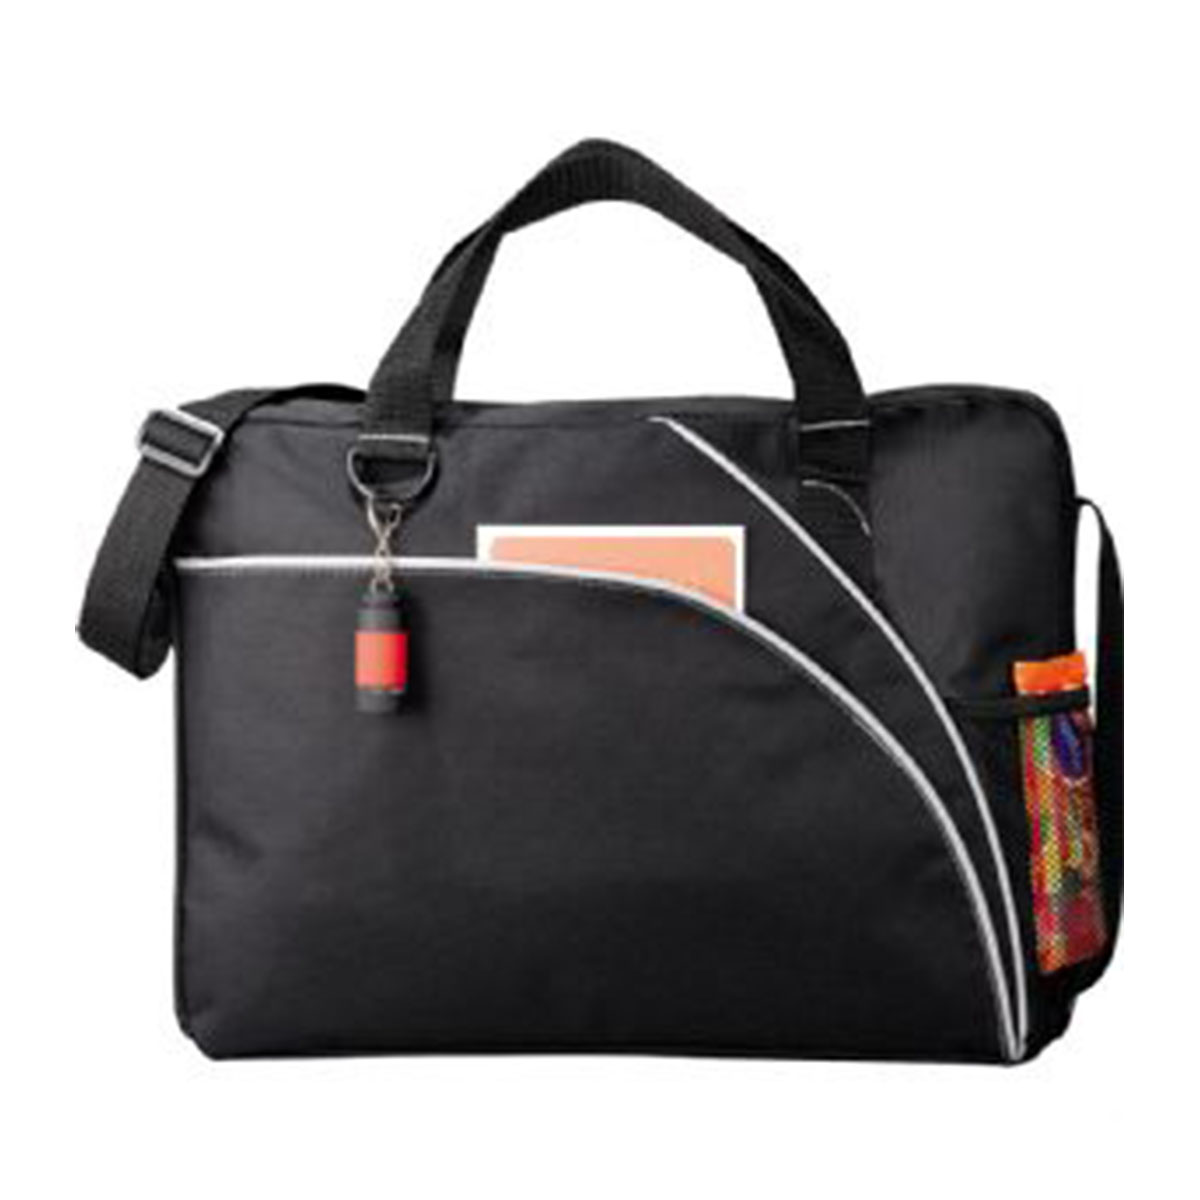 Double Curve Conference Bag-Black with grey trim.